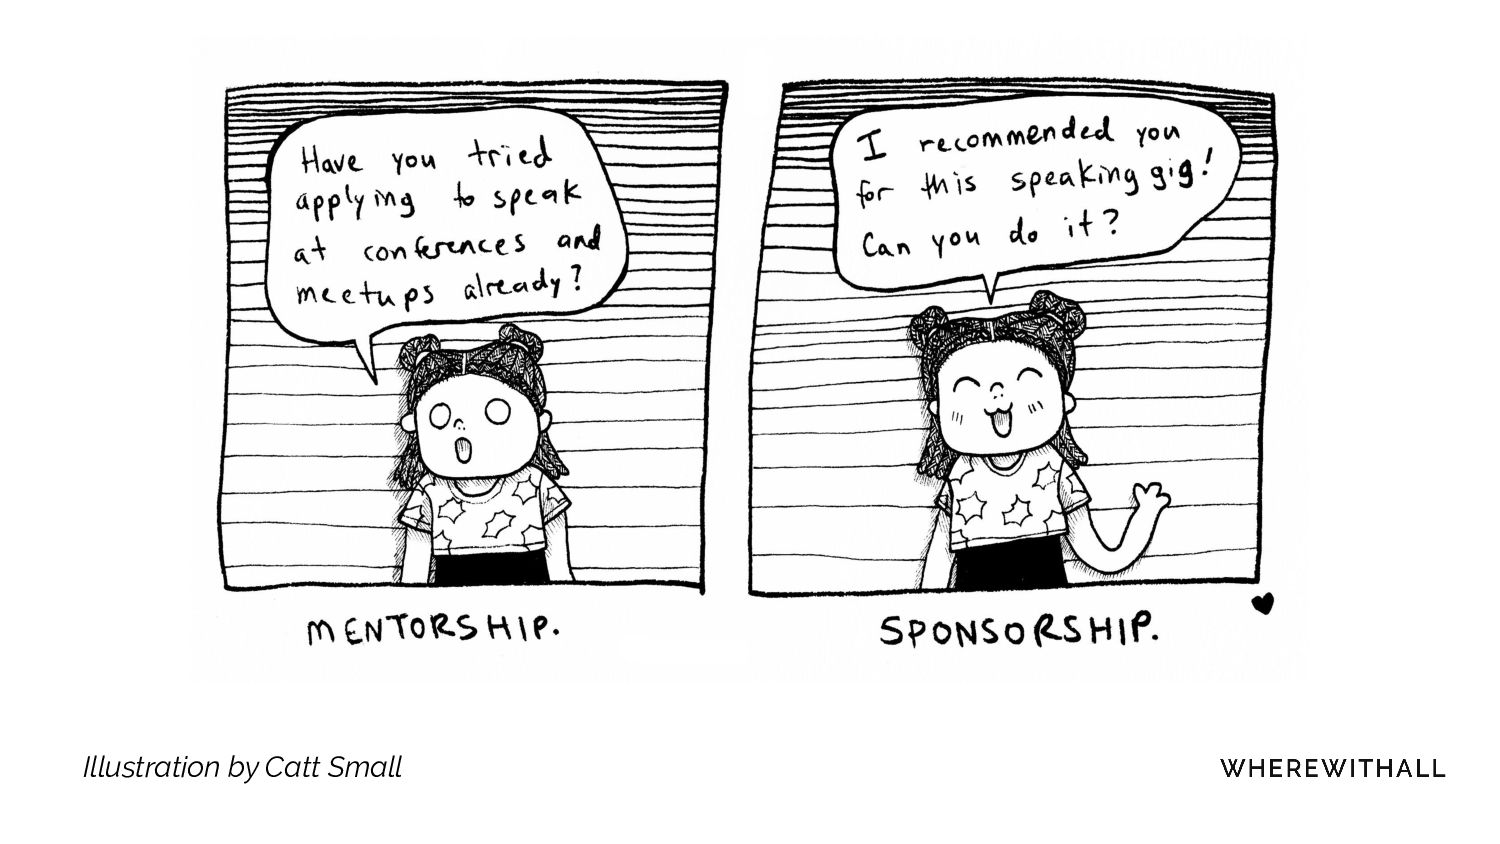 Mentors give perspective, sponsors give opportu...